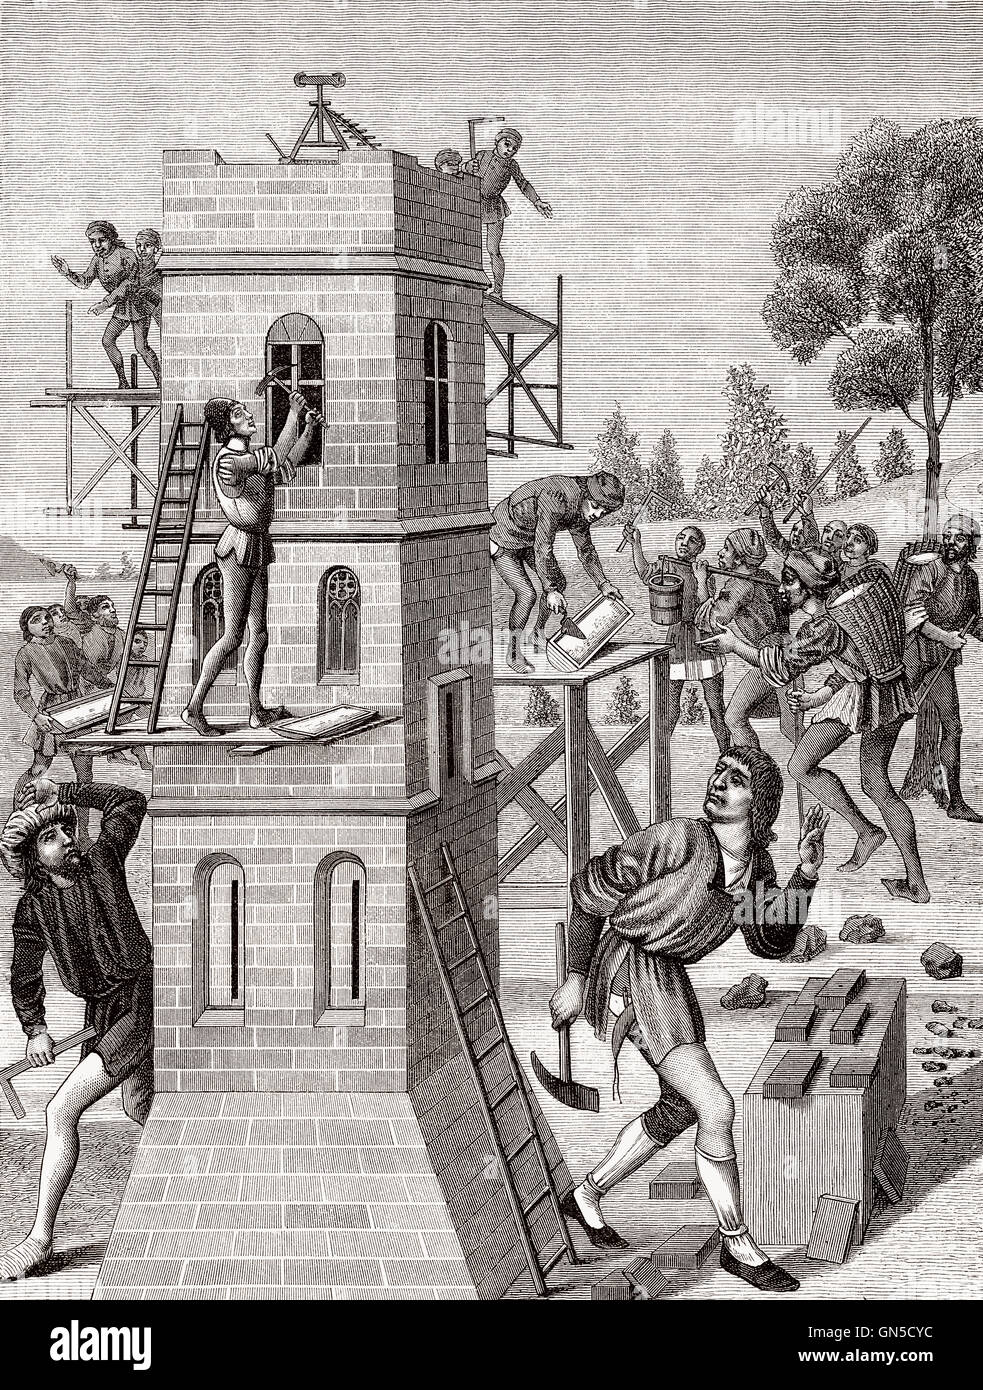 Bricklayer in the 15th century - Stock Image